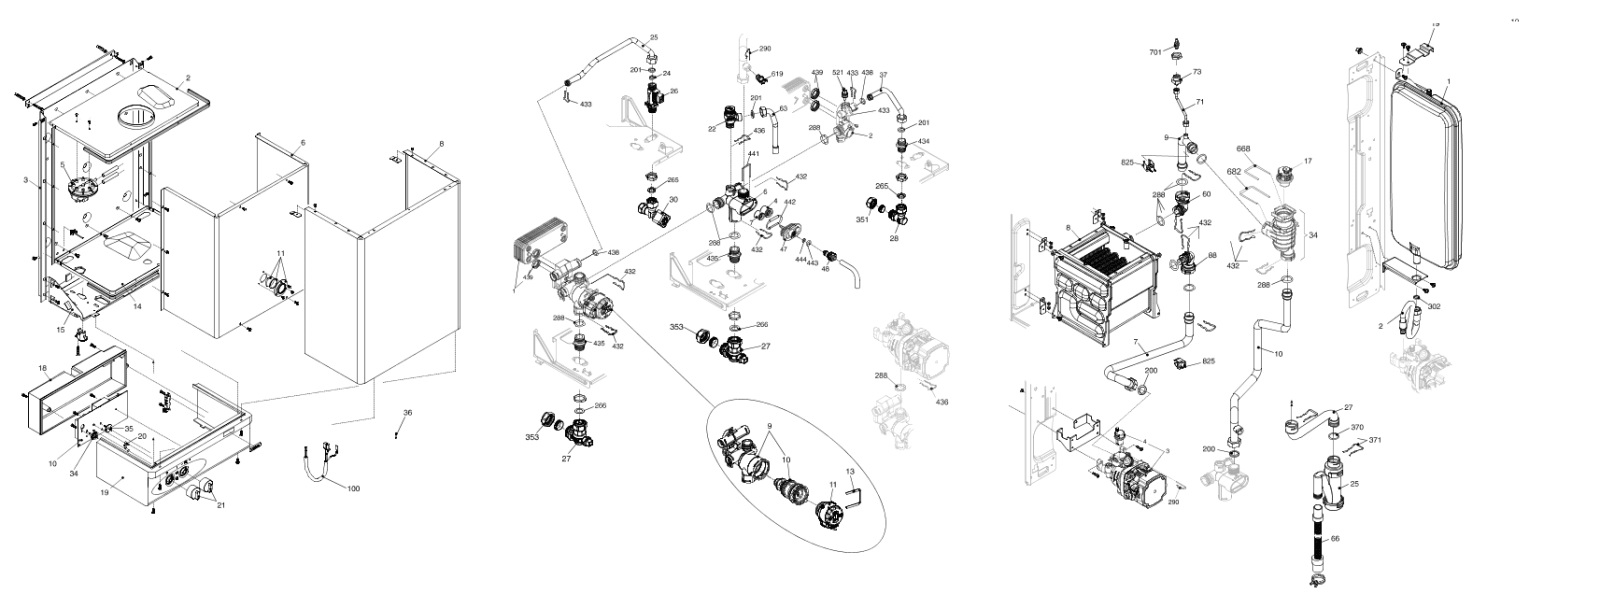 VOKERA BOILER DIAGRAM SCHEMATICS